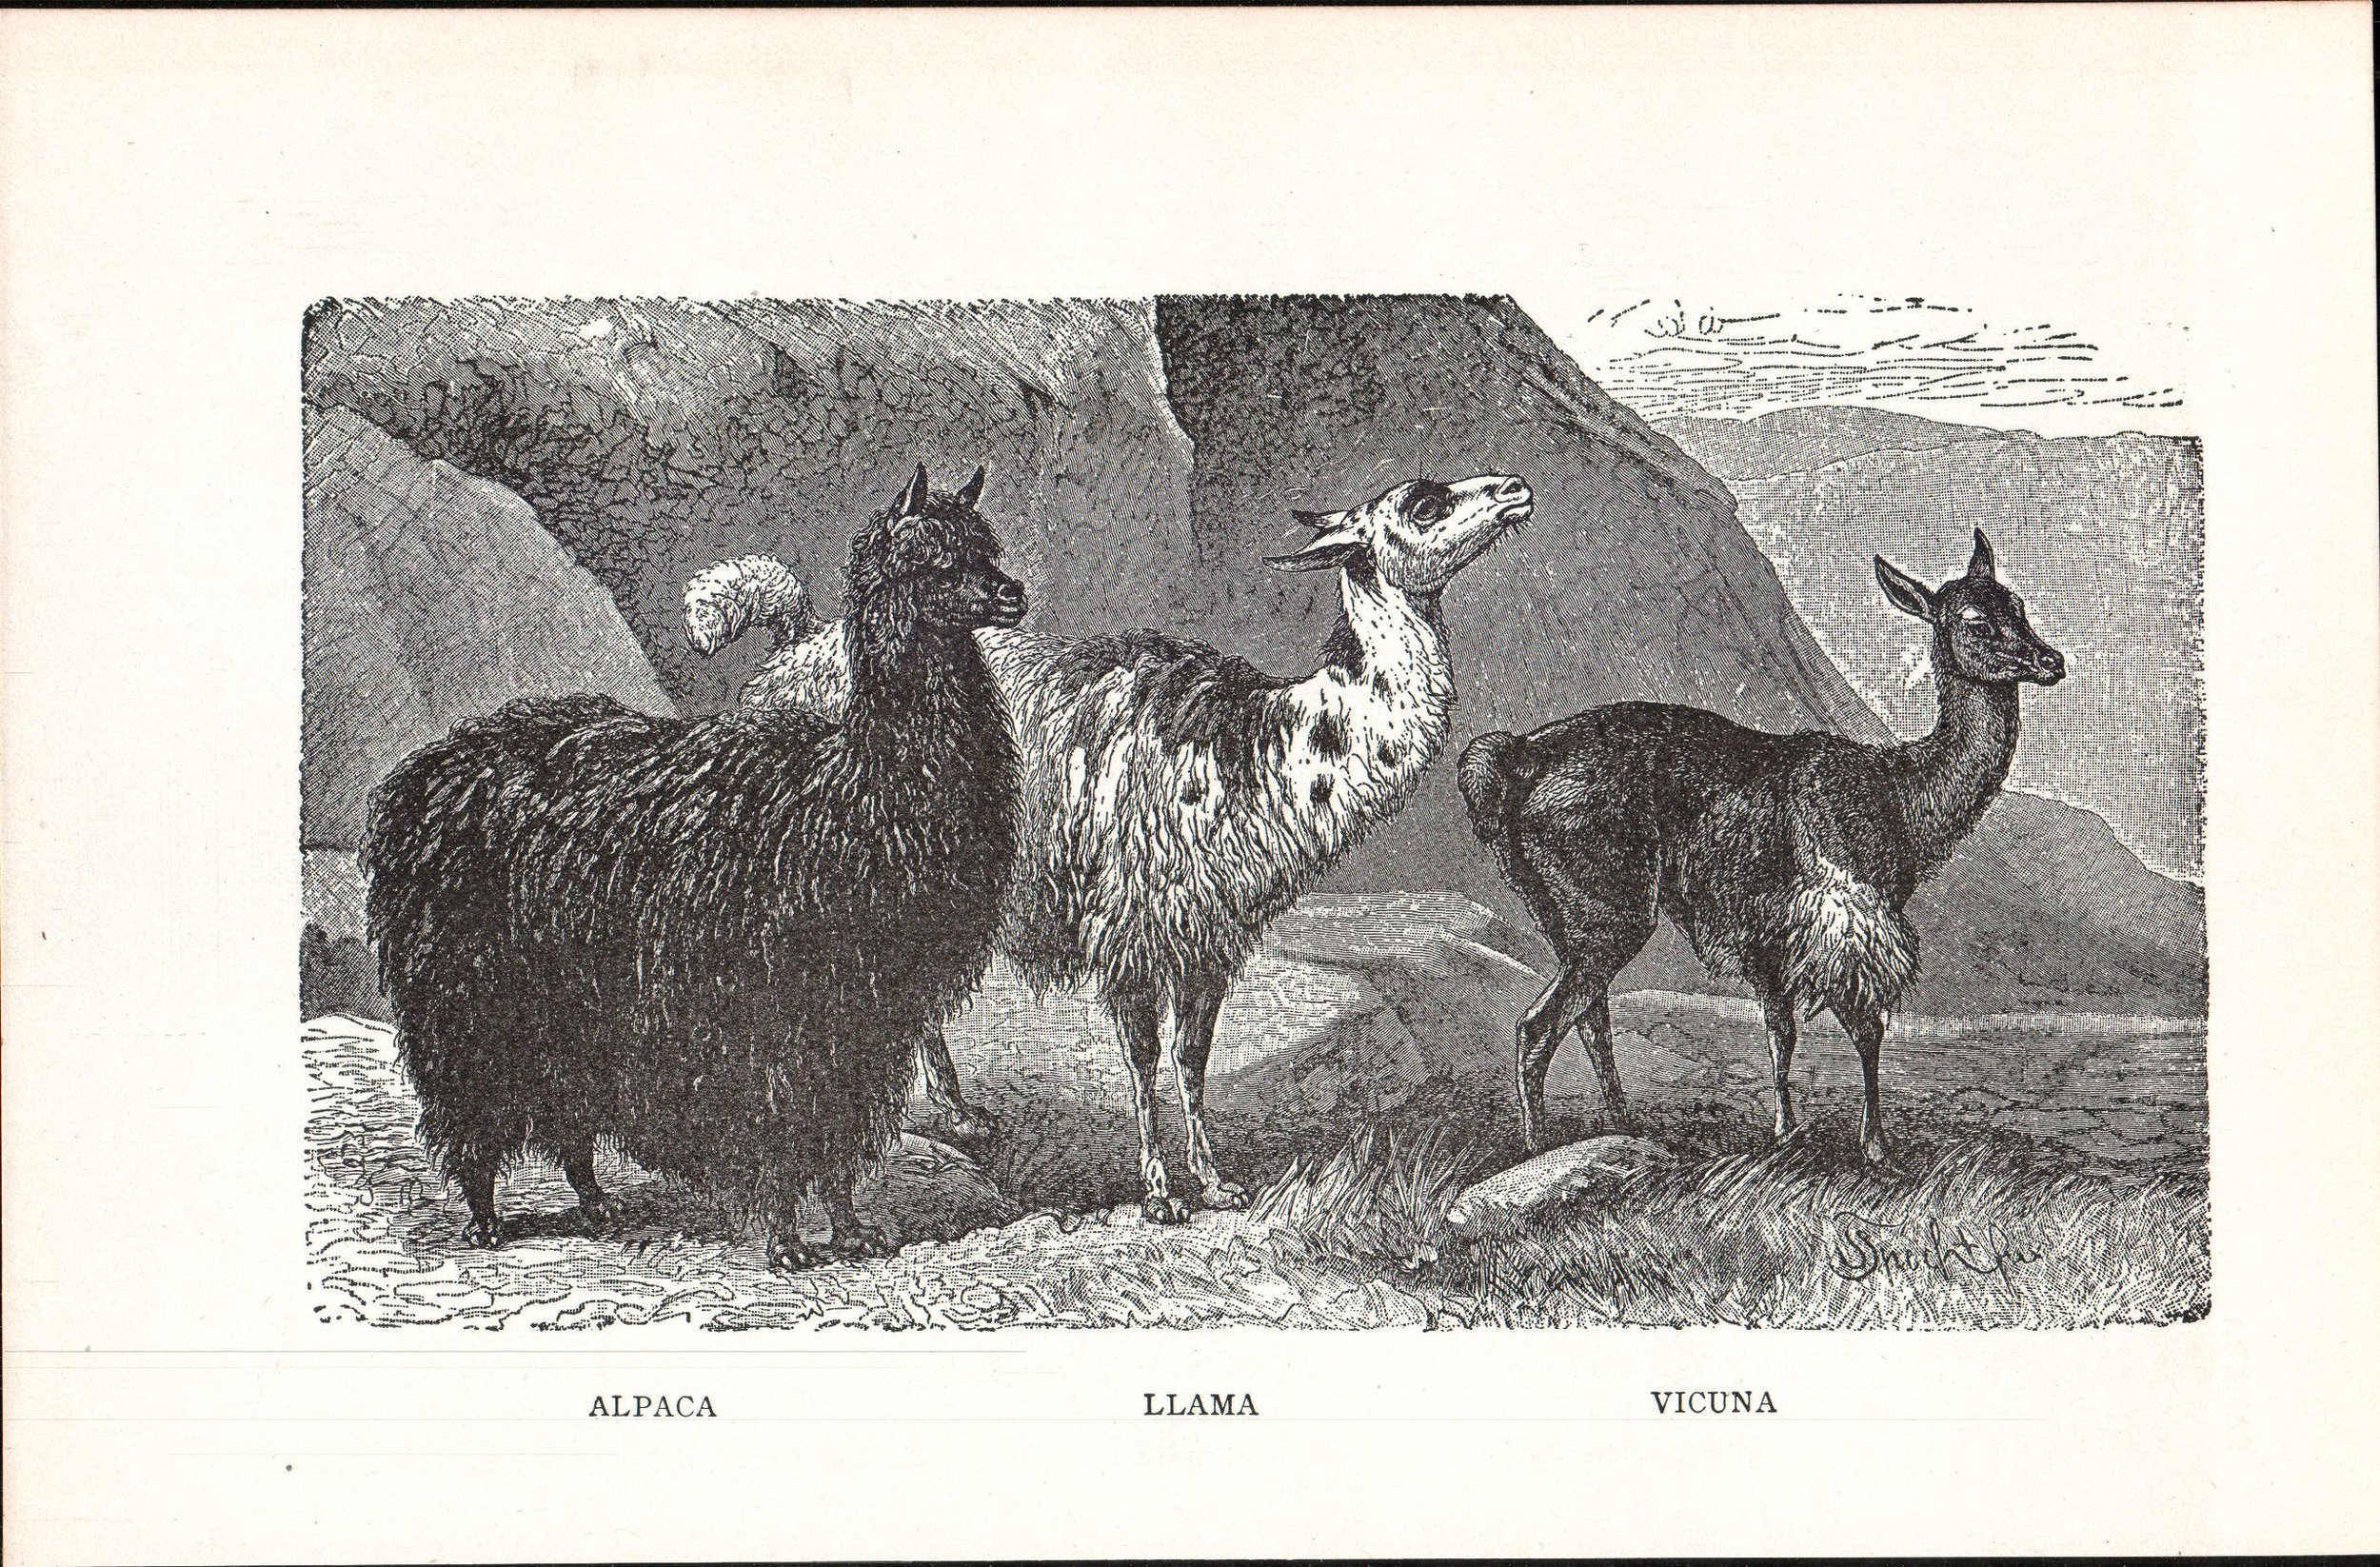 Alpaca,_Llama,_Vicuna_(illustration_from_New_Student's_Reference_Work,_1914).jpg